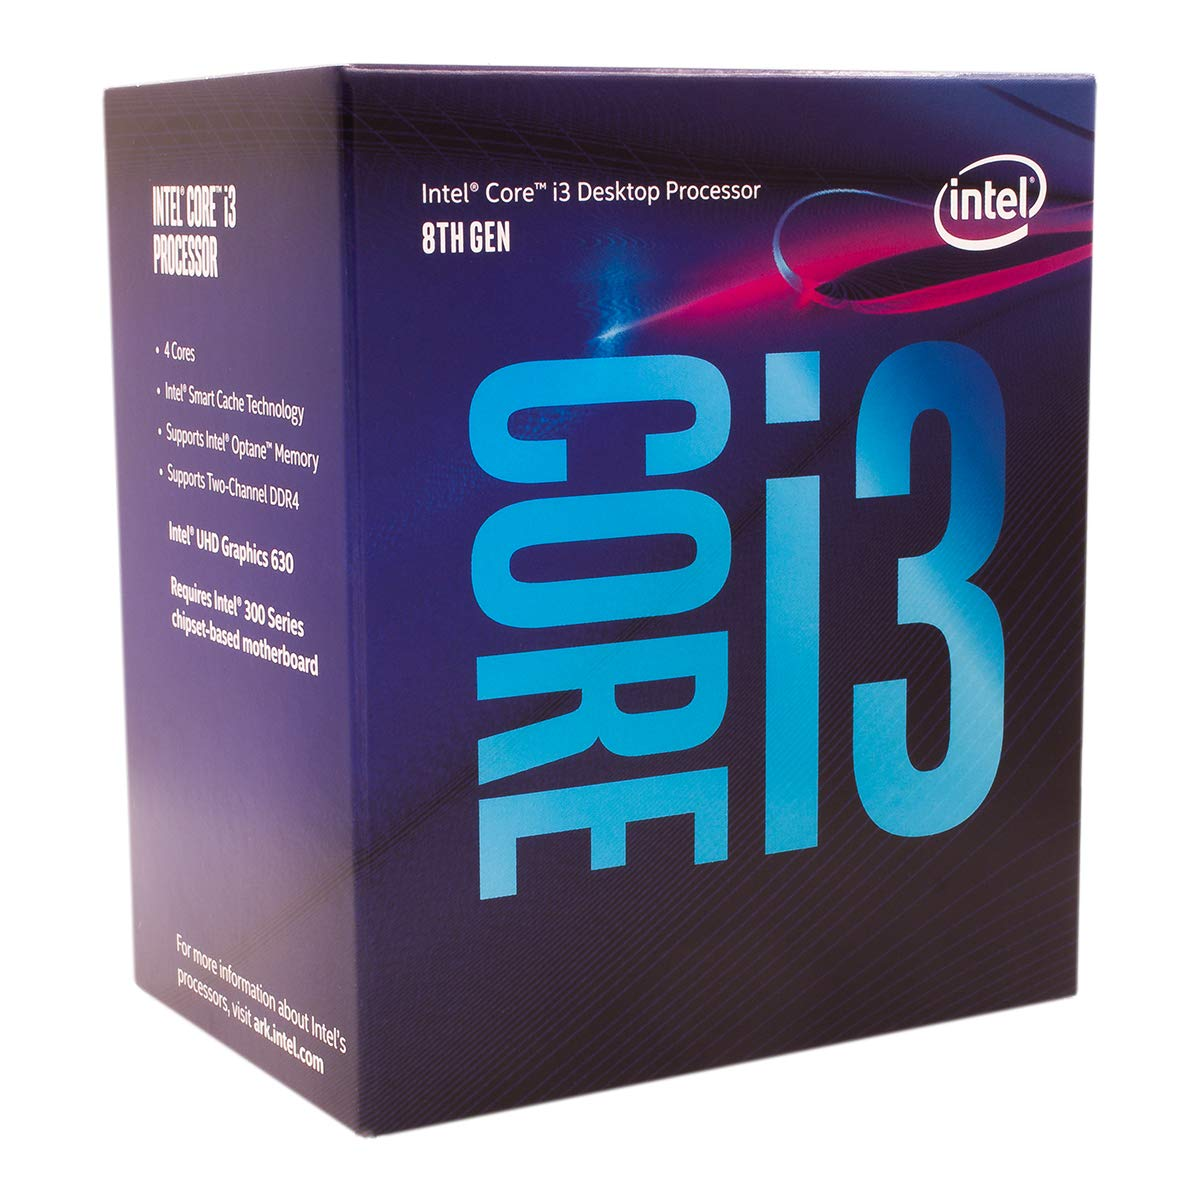 Intel Core i3-8100 Desktop Processor 4 Cores up to 3.6 GHz Turbo Unlocked LGA1151 300 Series 95W by Intel